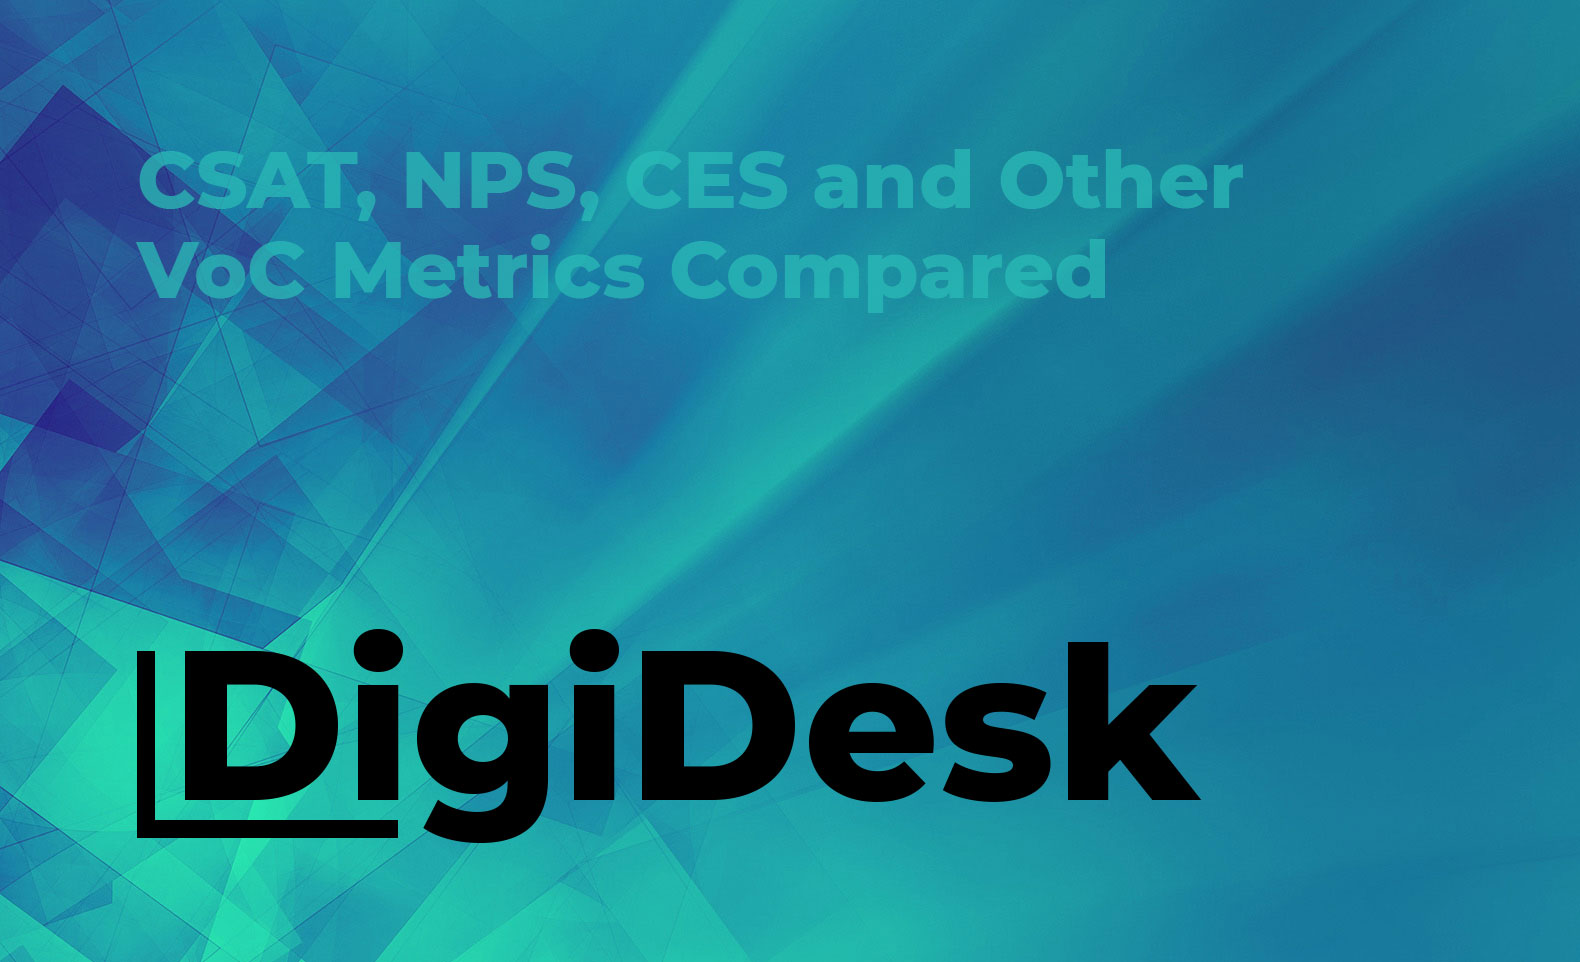 CSAT, NPS, CES and Other VoC Metrics Compared